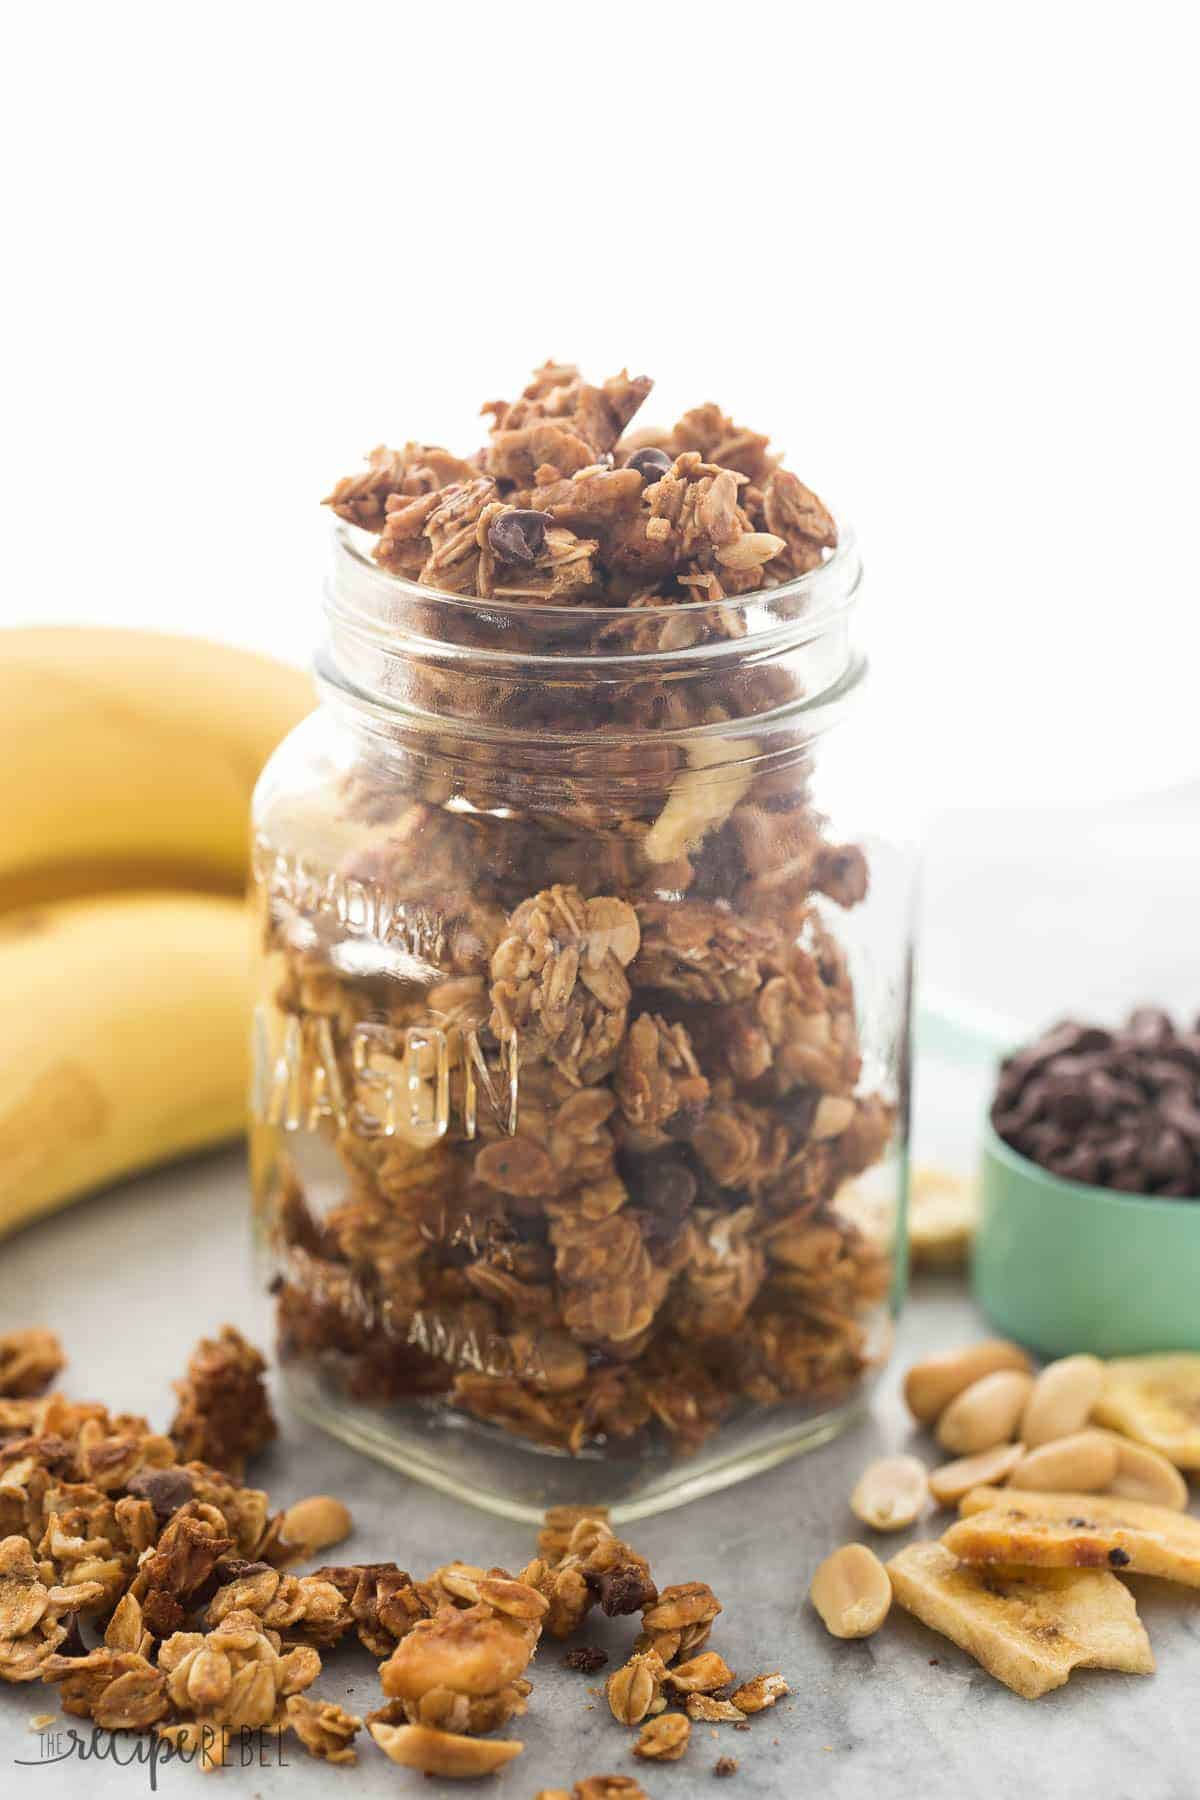 Chunky Monkey Granola (Chocolate Peanut Butter Banana)